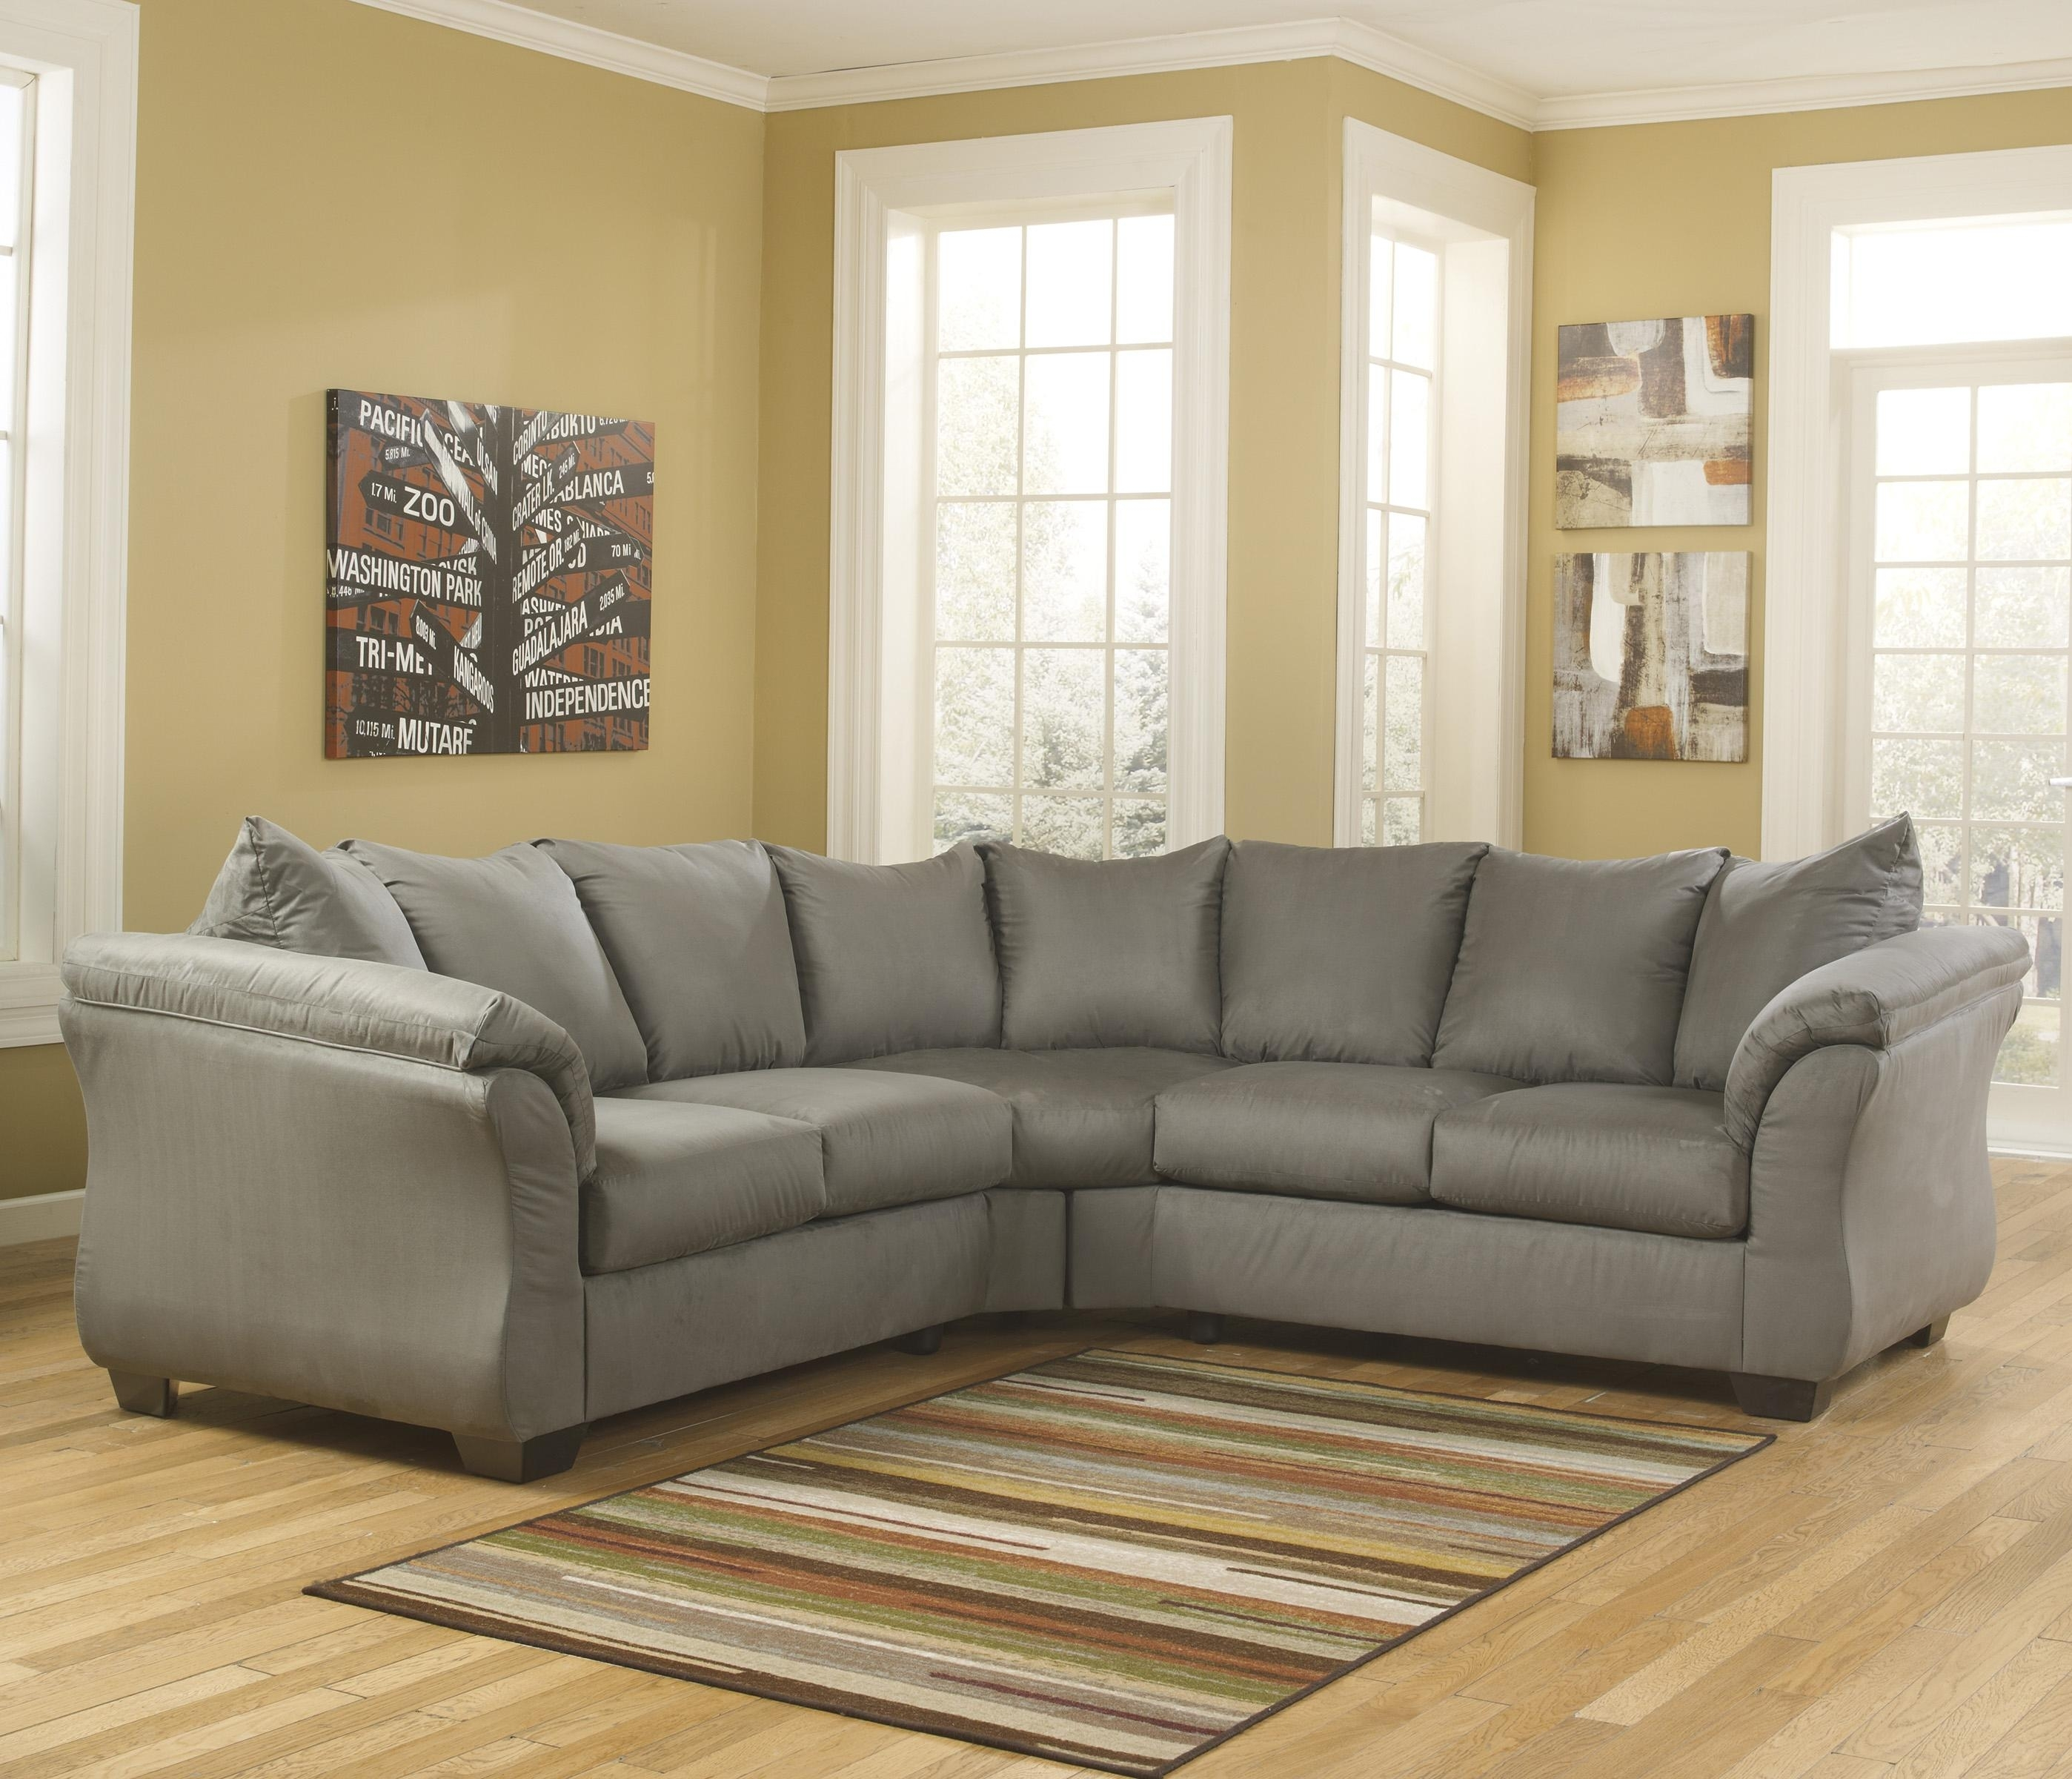 Darcy – Cobblestone Sectional Sofasignature Designashley With Eau Claire Wi Sectional Sofas (View 5 of 10)